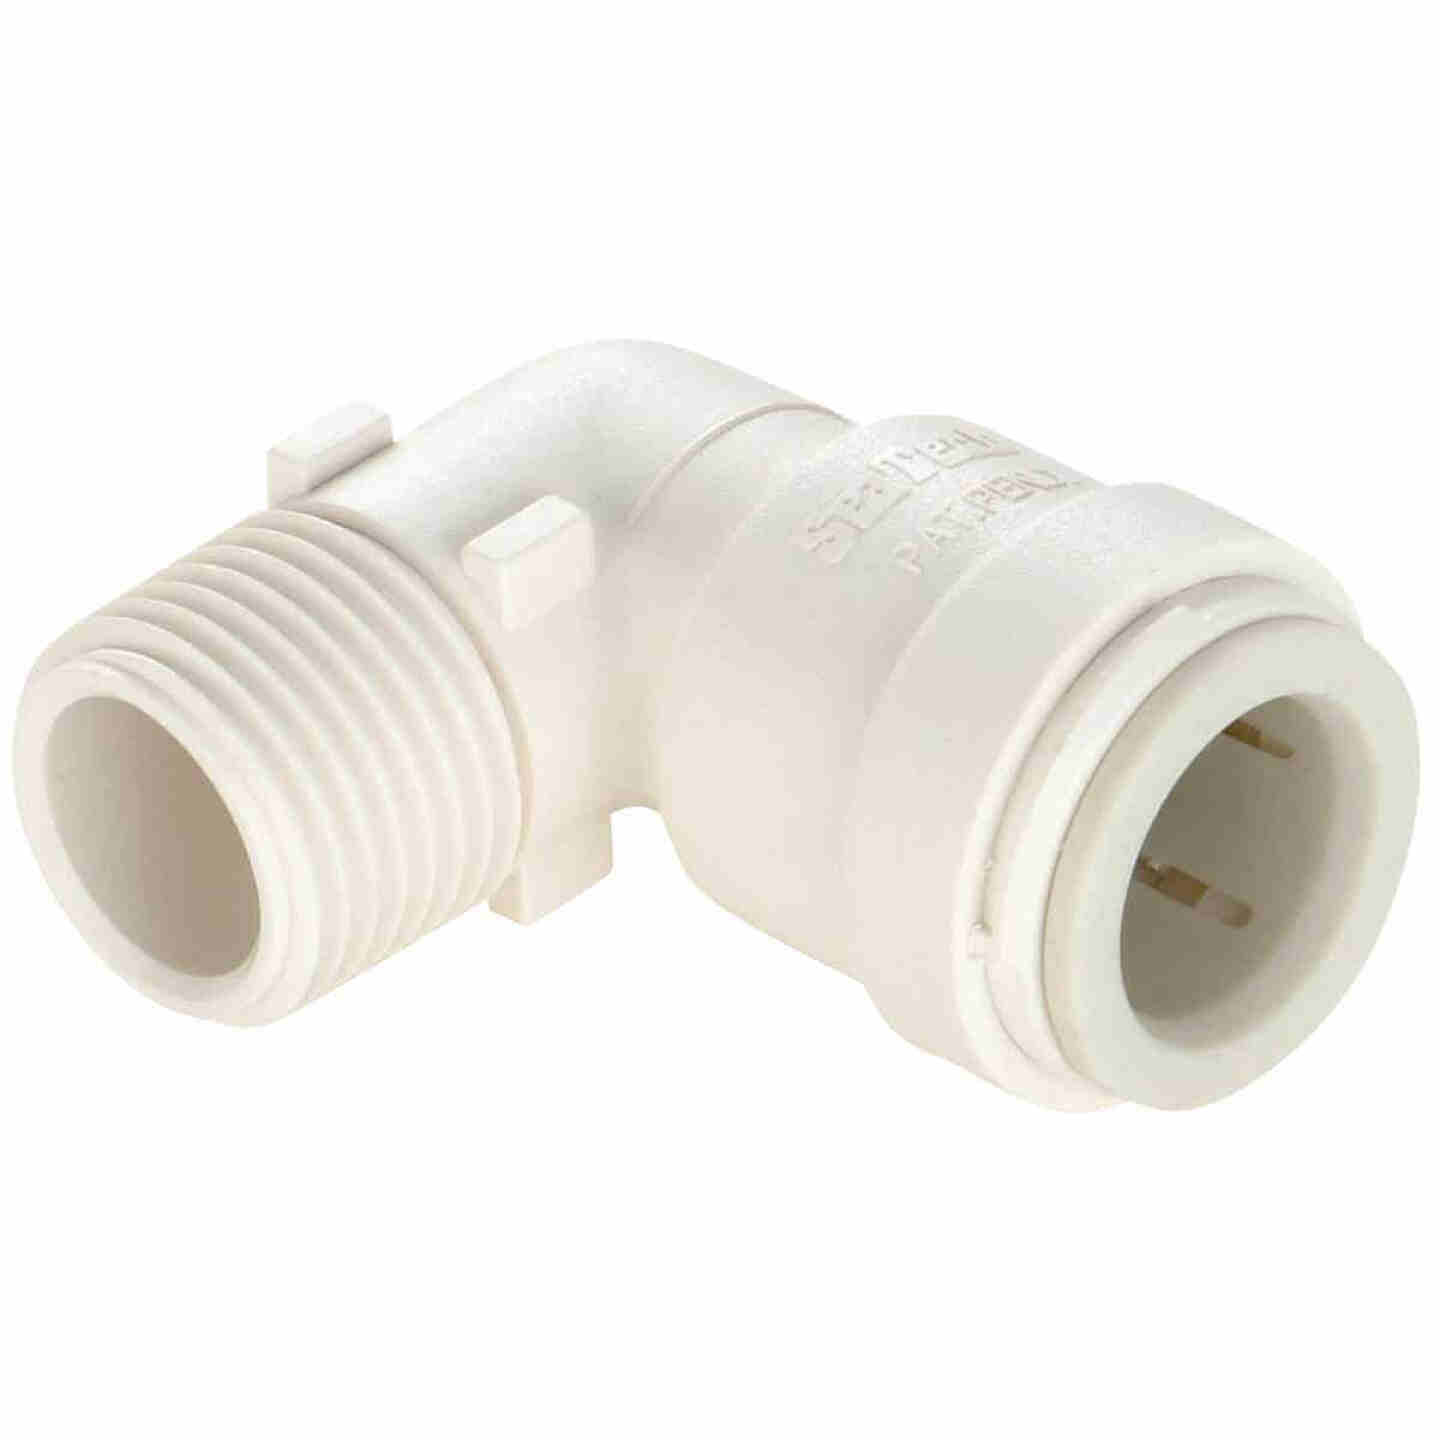 Watts 1/2 In. CTS x 1/2 In. MPT 90 Deg. Quick Connect Plastic Elbow (1/4 Bend) Image 1